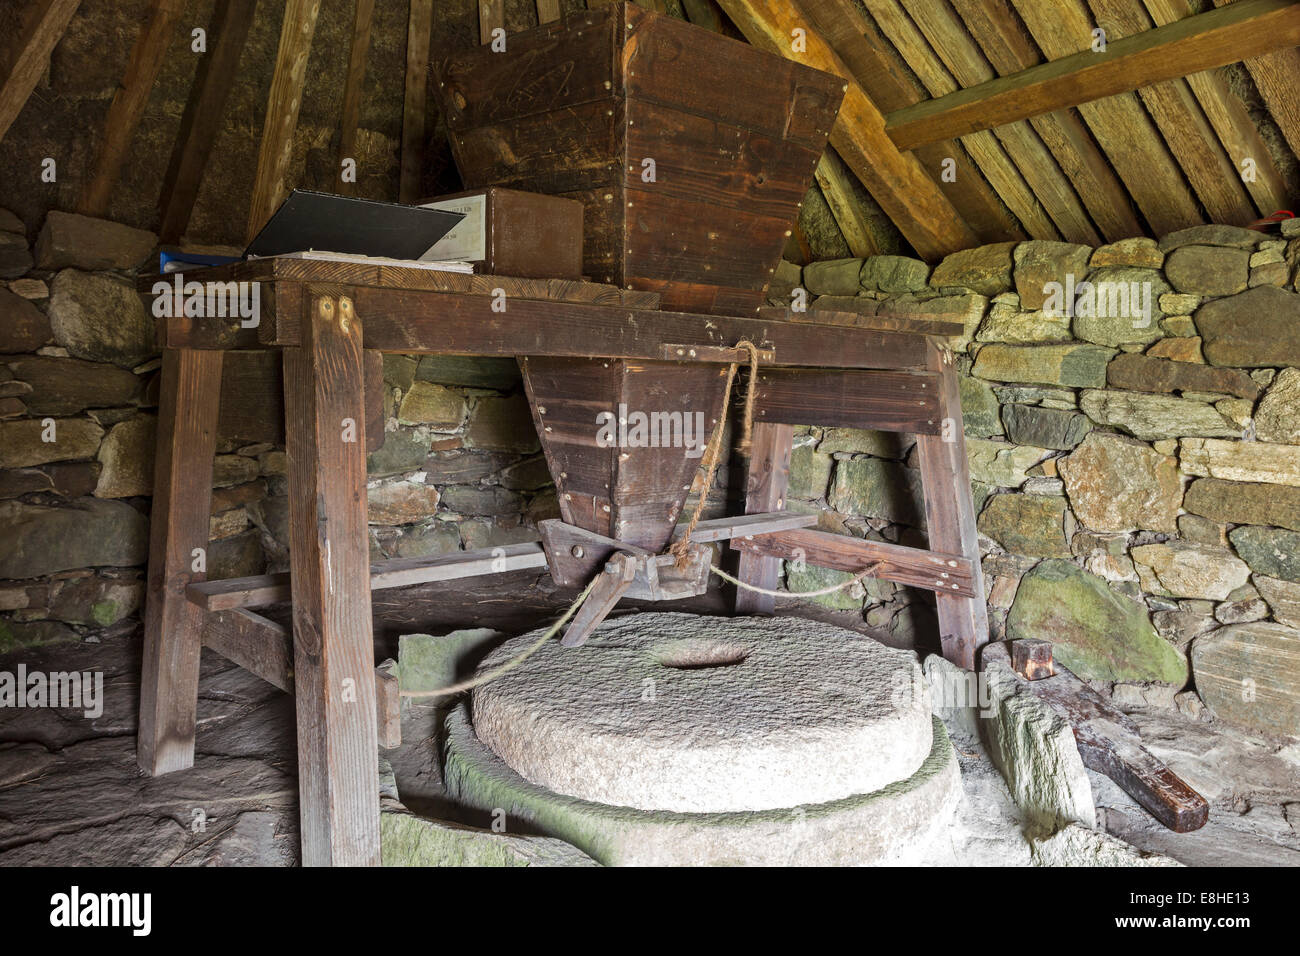 Interior of the Reconstructed Norse Mill, Shawbost Isle of Lewis Hebrides Scotland UK - Stock Image